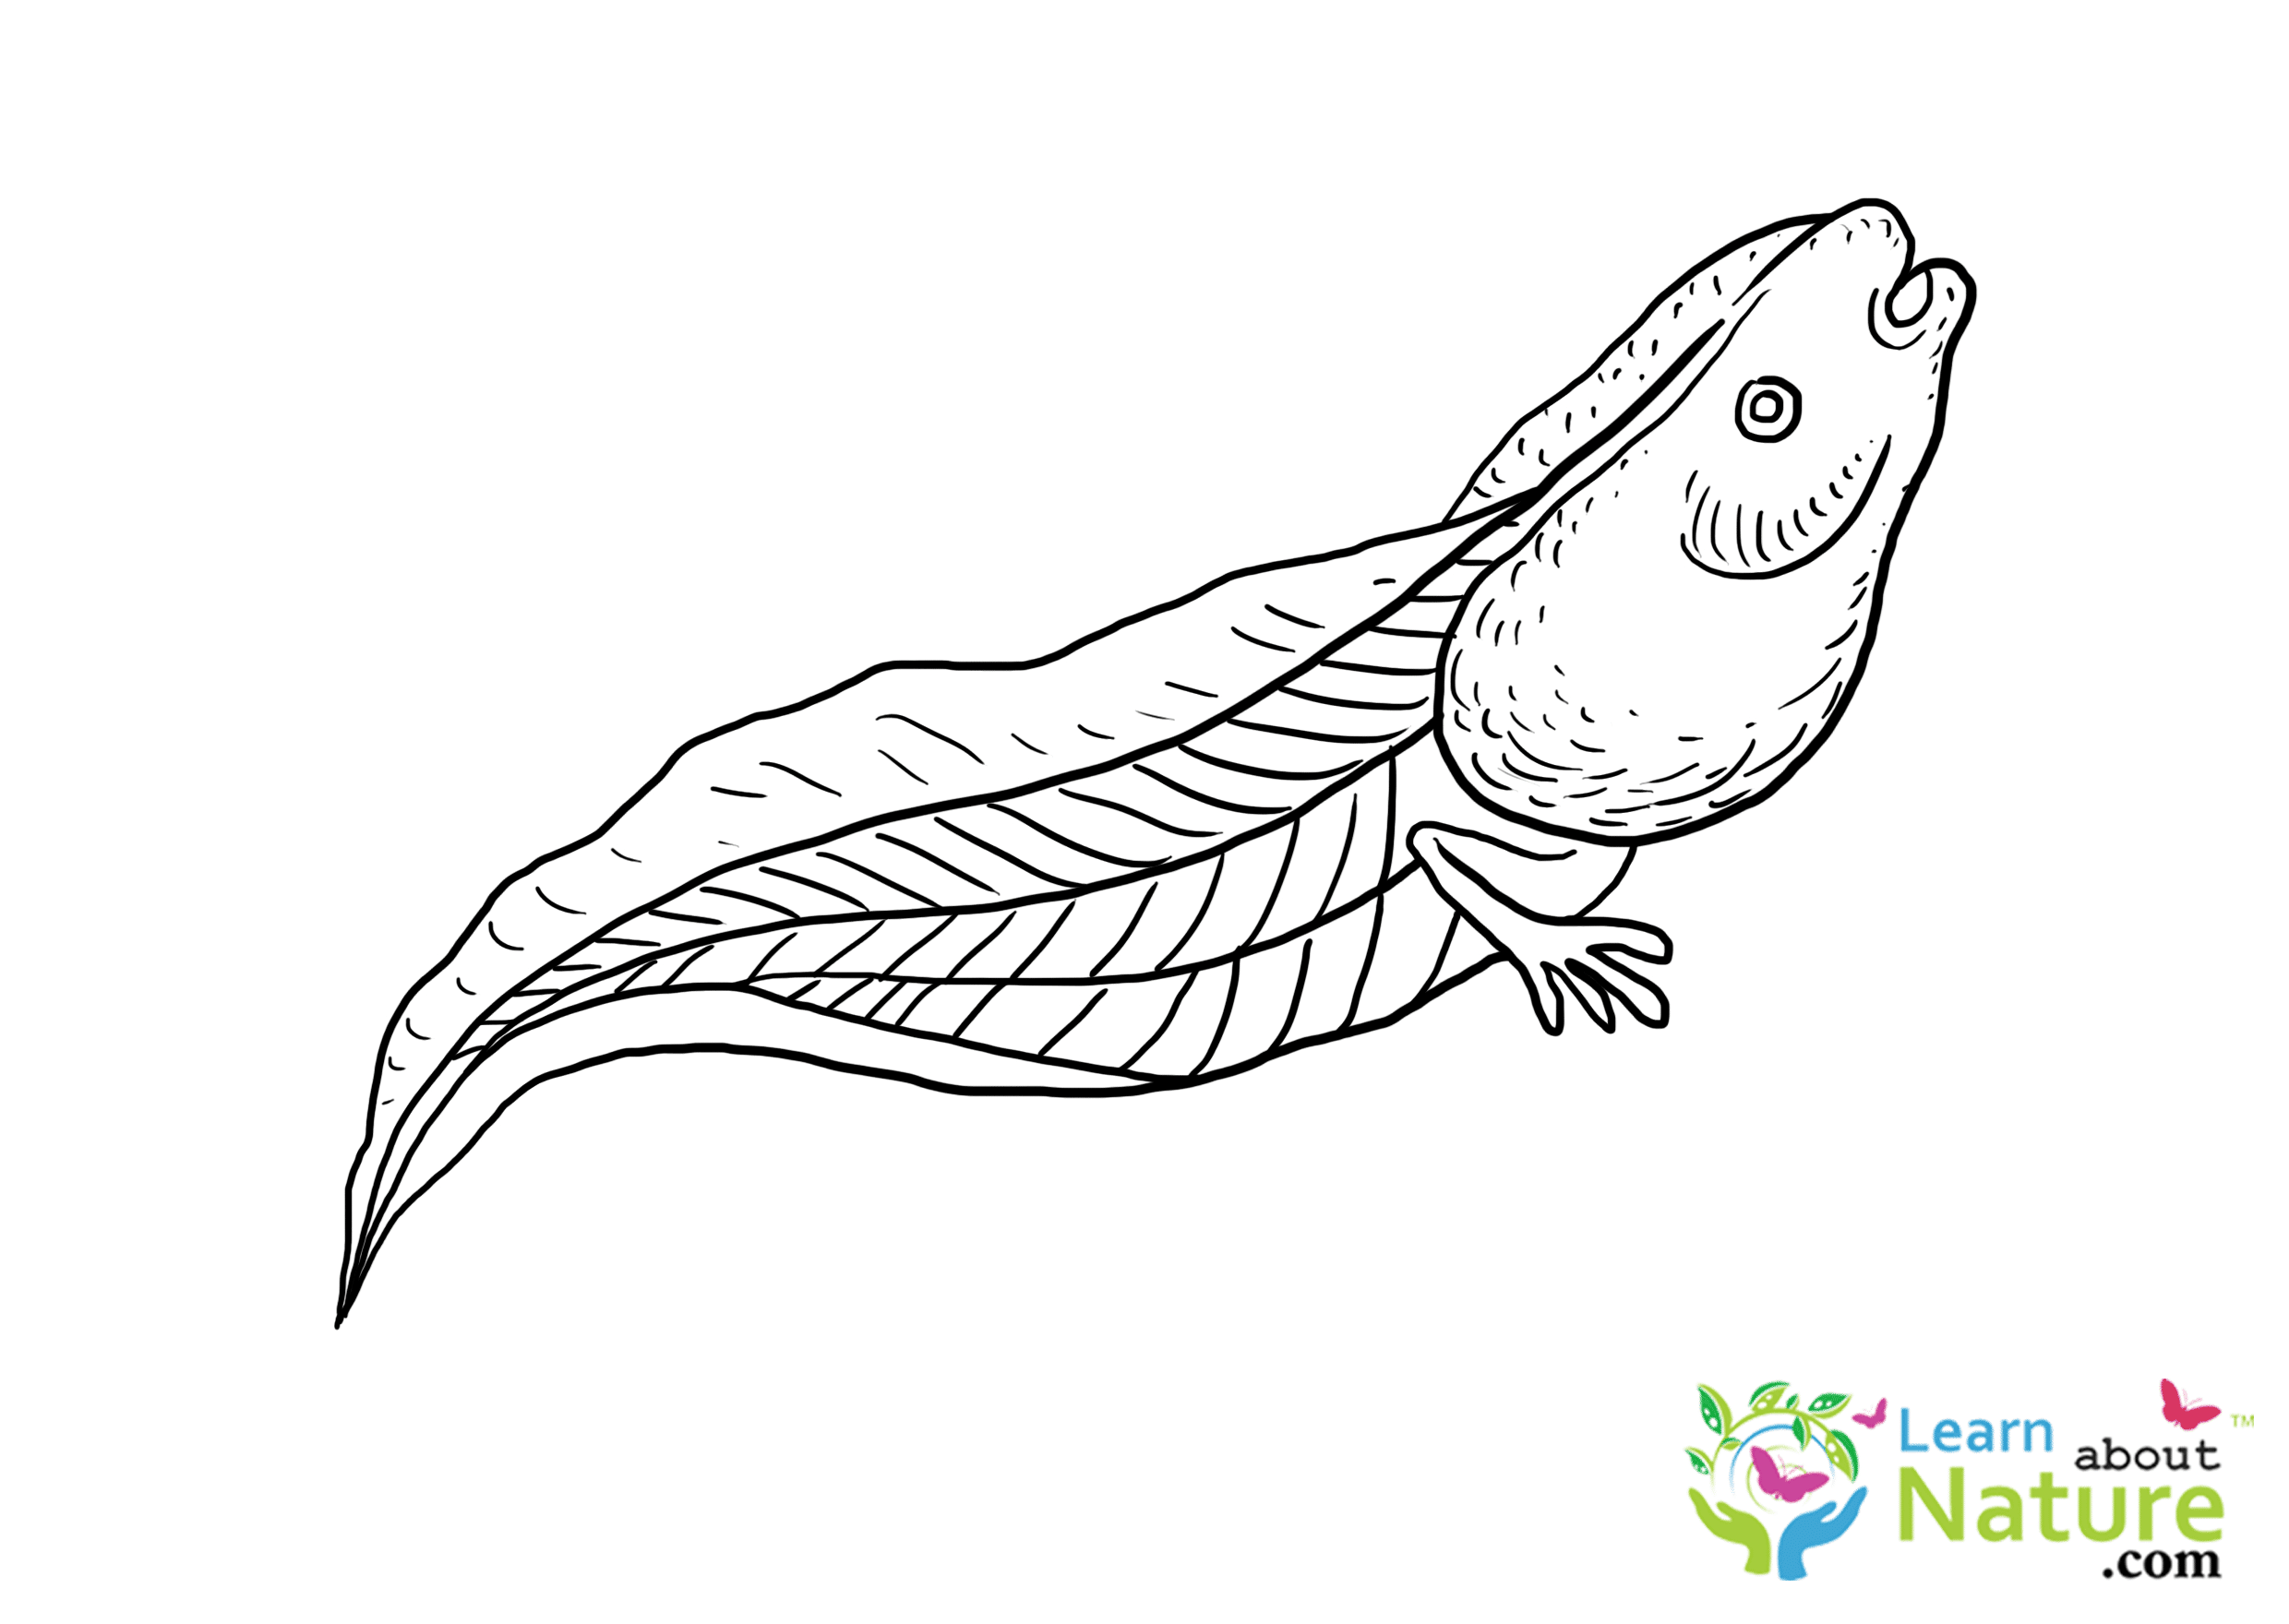 tadpole and froglet coloring page free printable coloring pages ...